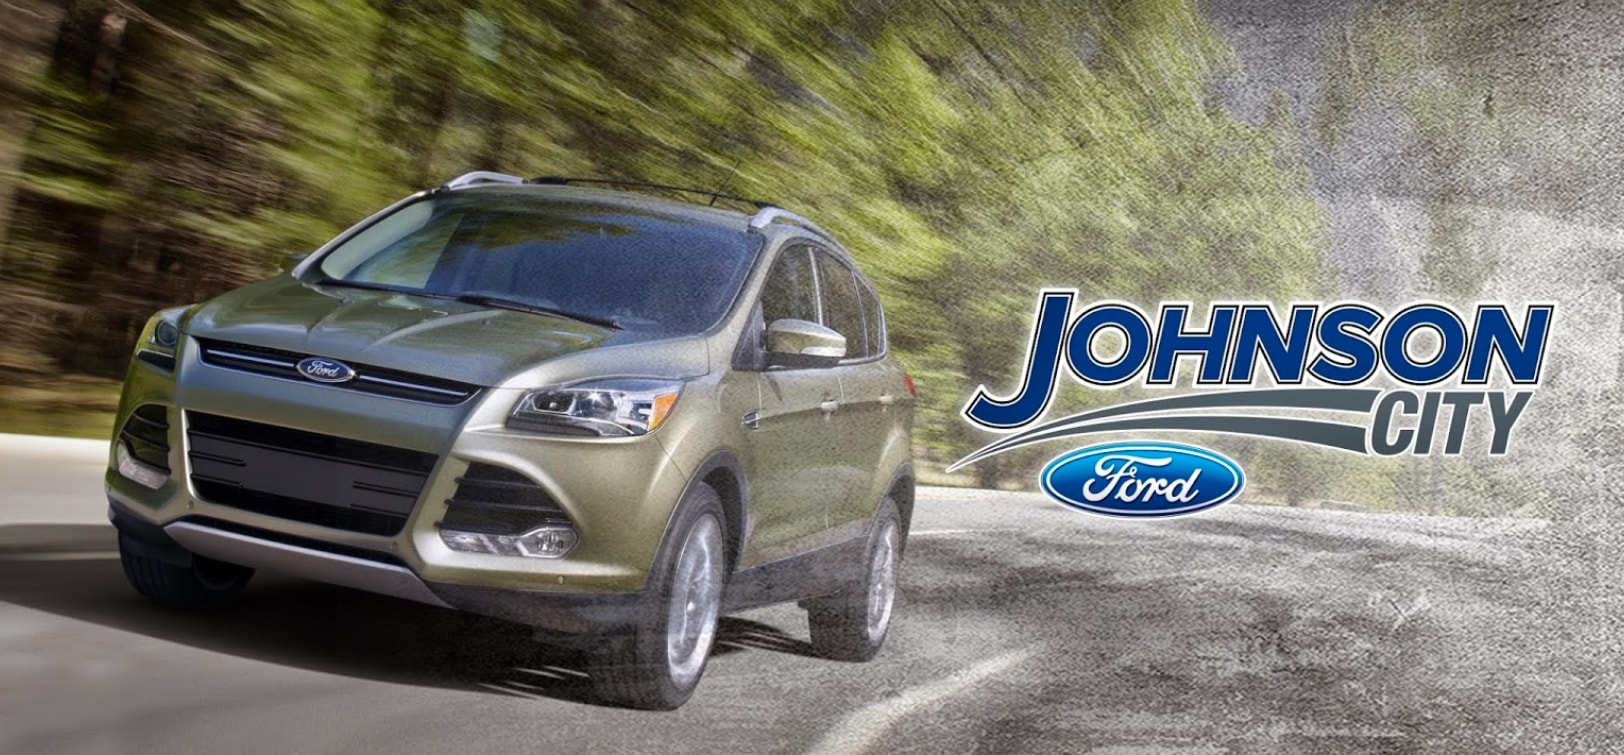 Welcome to johnson city ford lincoln